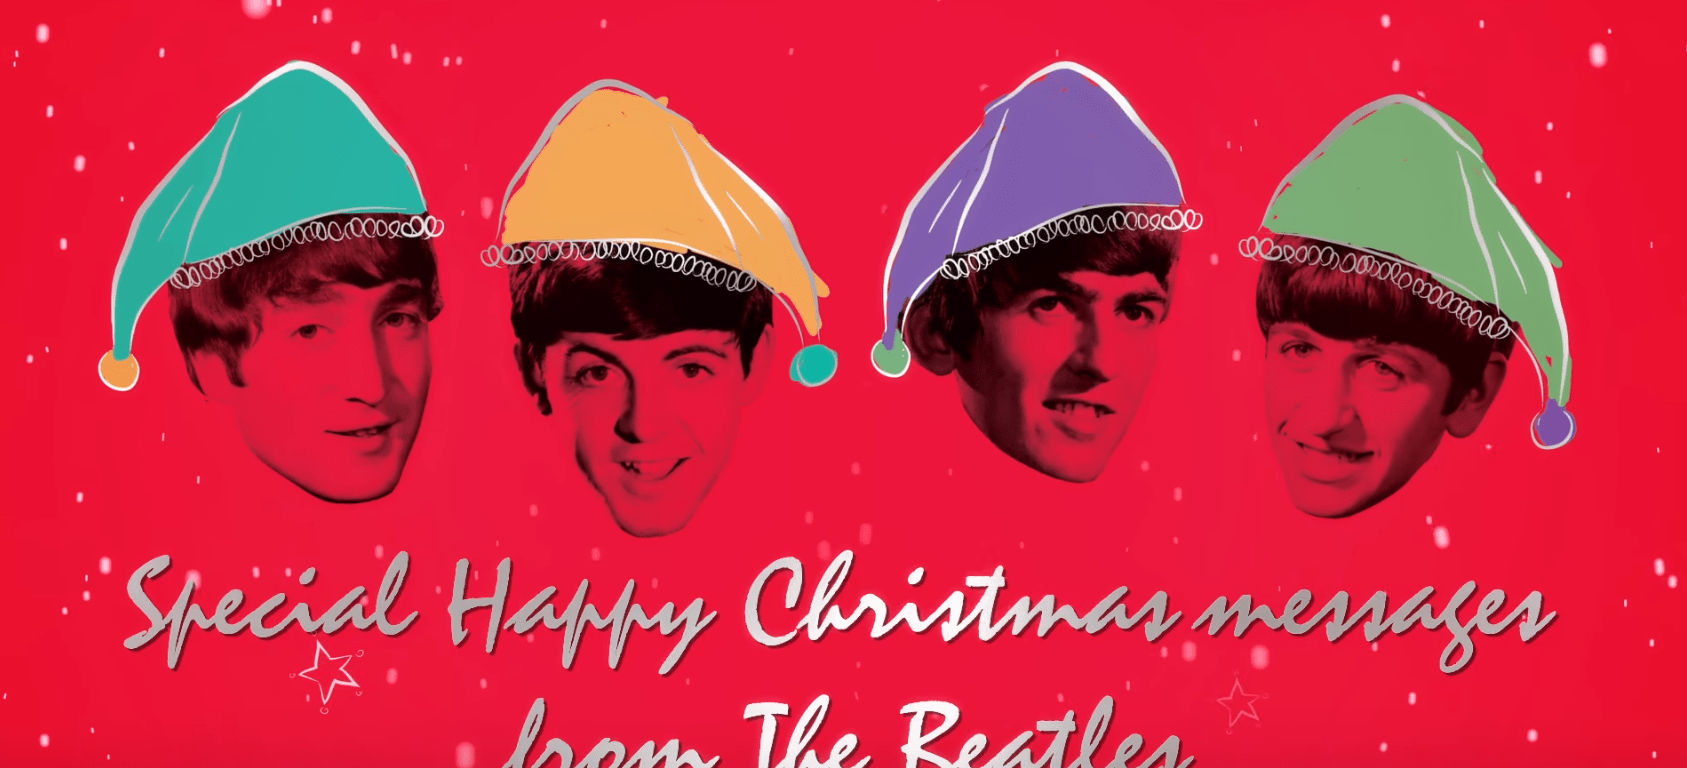 Ring In The Holidays With New Global Beatles Releases